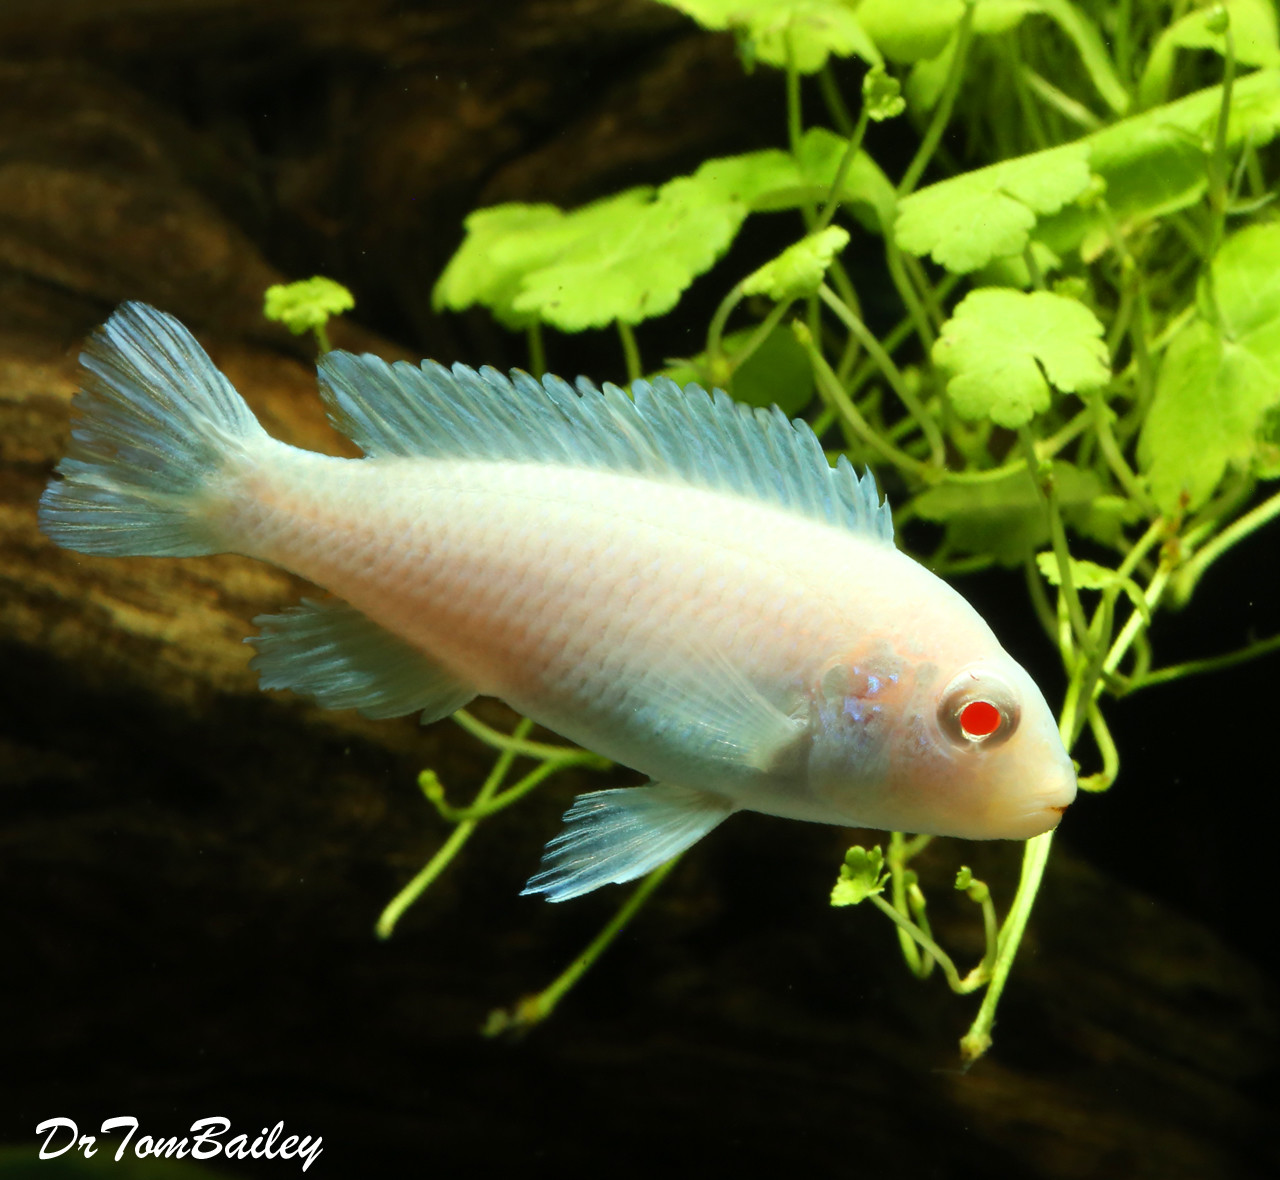 Premium Snow White Socolofi Mbuna Cichlid from Lake Malawi